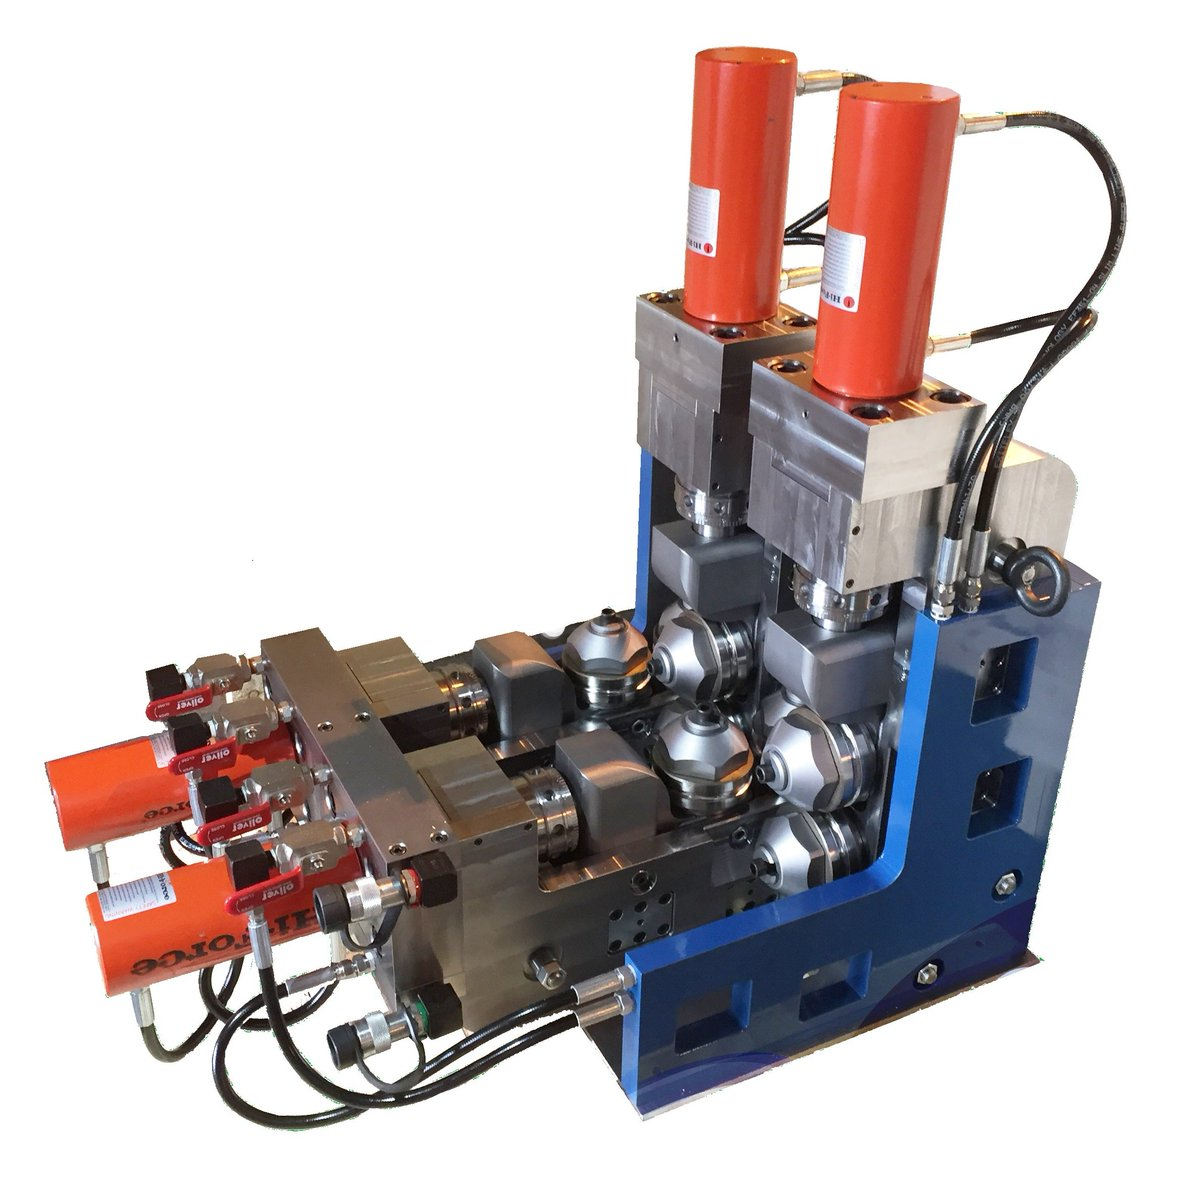 The compaction units are available to cover the full strand diameter range from 2 to 40 mm diameter. #wire #cable #rope #ukmfg<br>http://pic.twitter.com/D4clgyJD8a